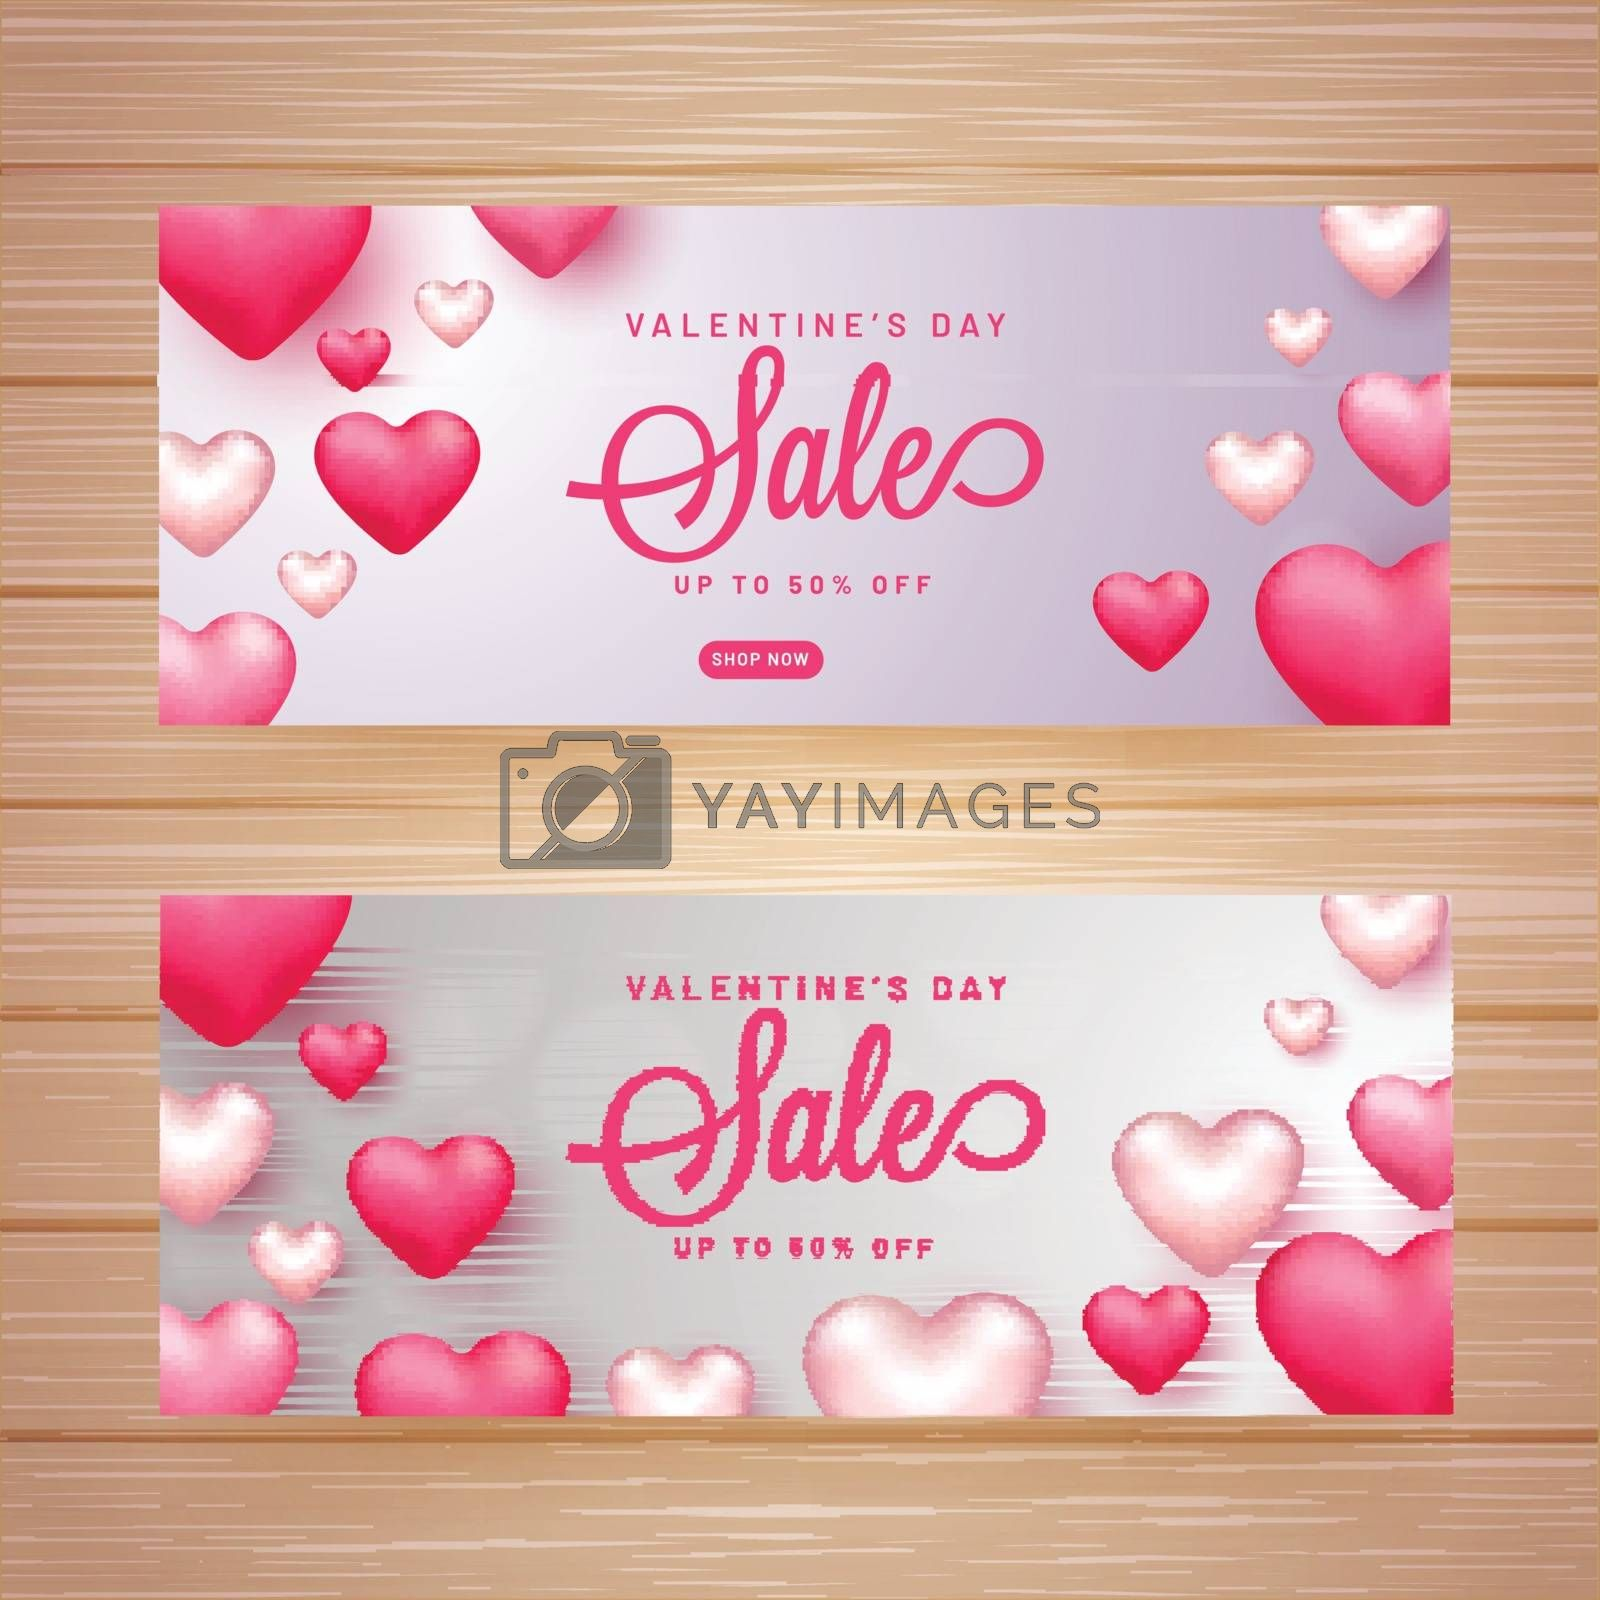 Valentine's Day sale header or banner set with 50% discount offe by aispl